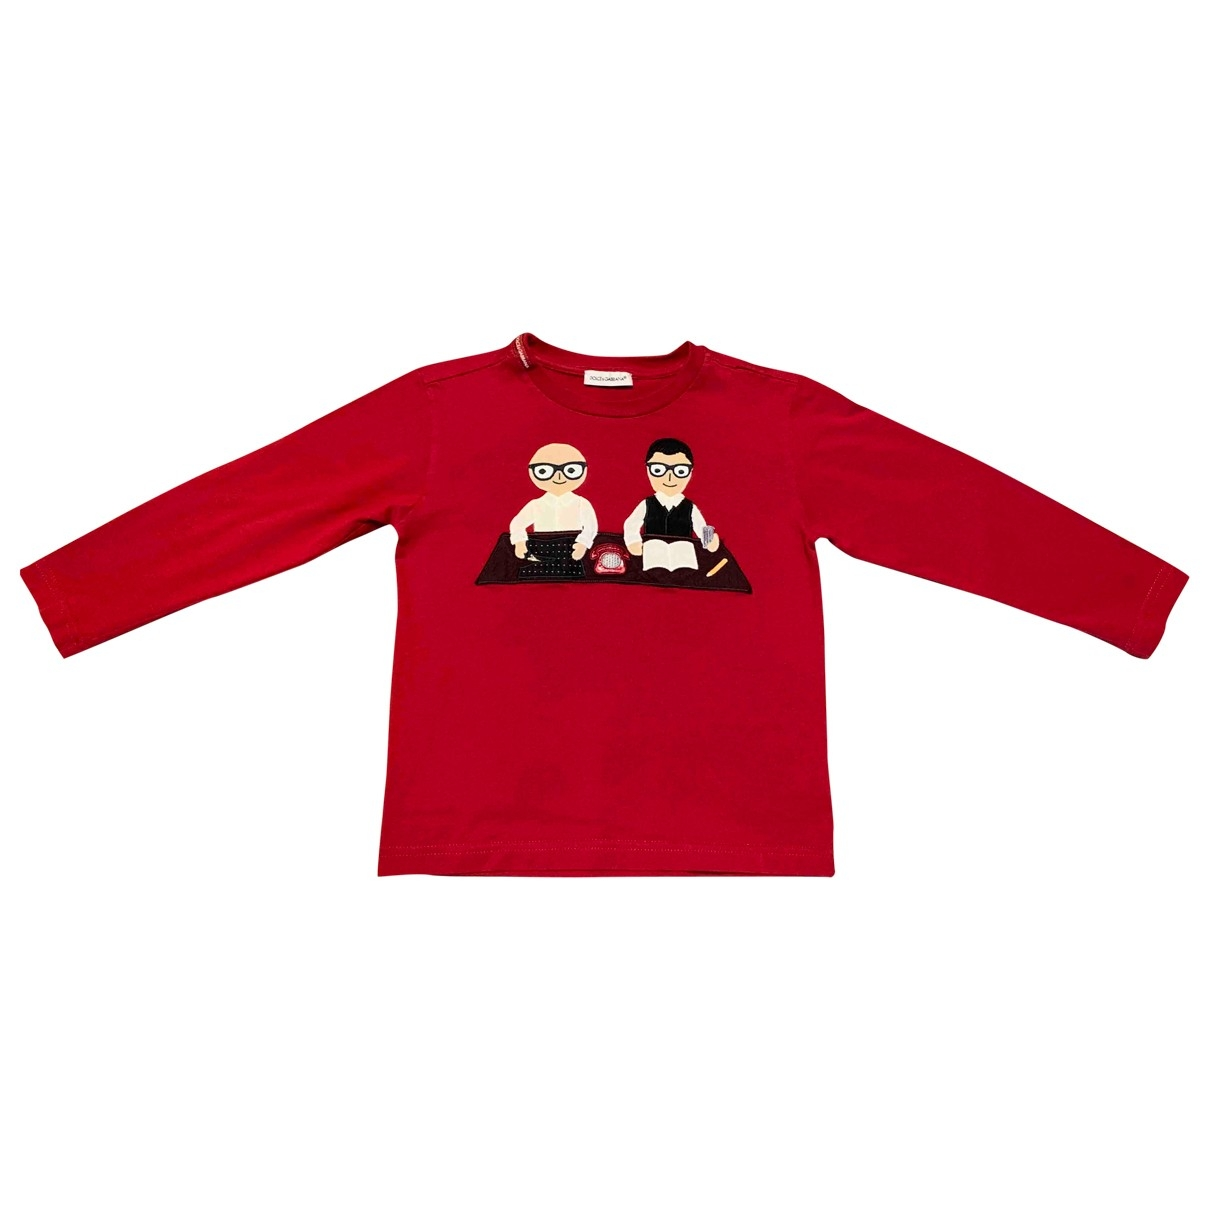 Dolce & Gabbana \N Red Cotton  top for Kids 4 years - up to 102cm FR